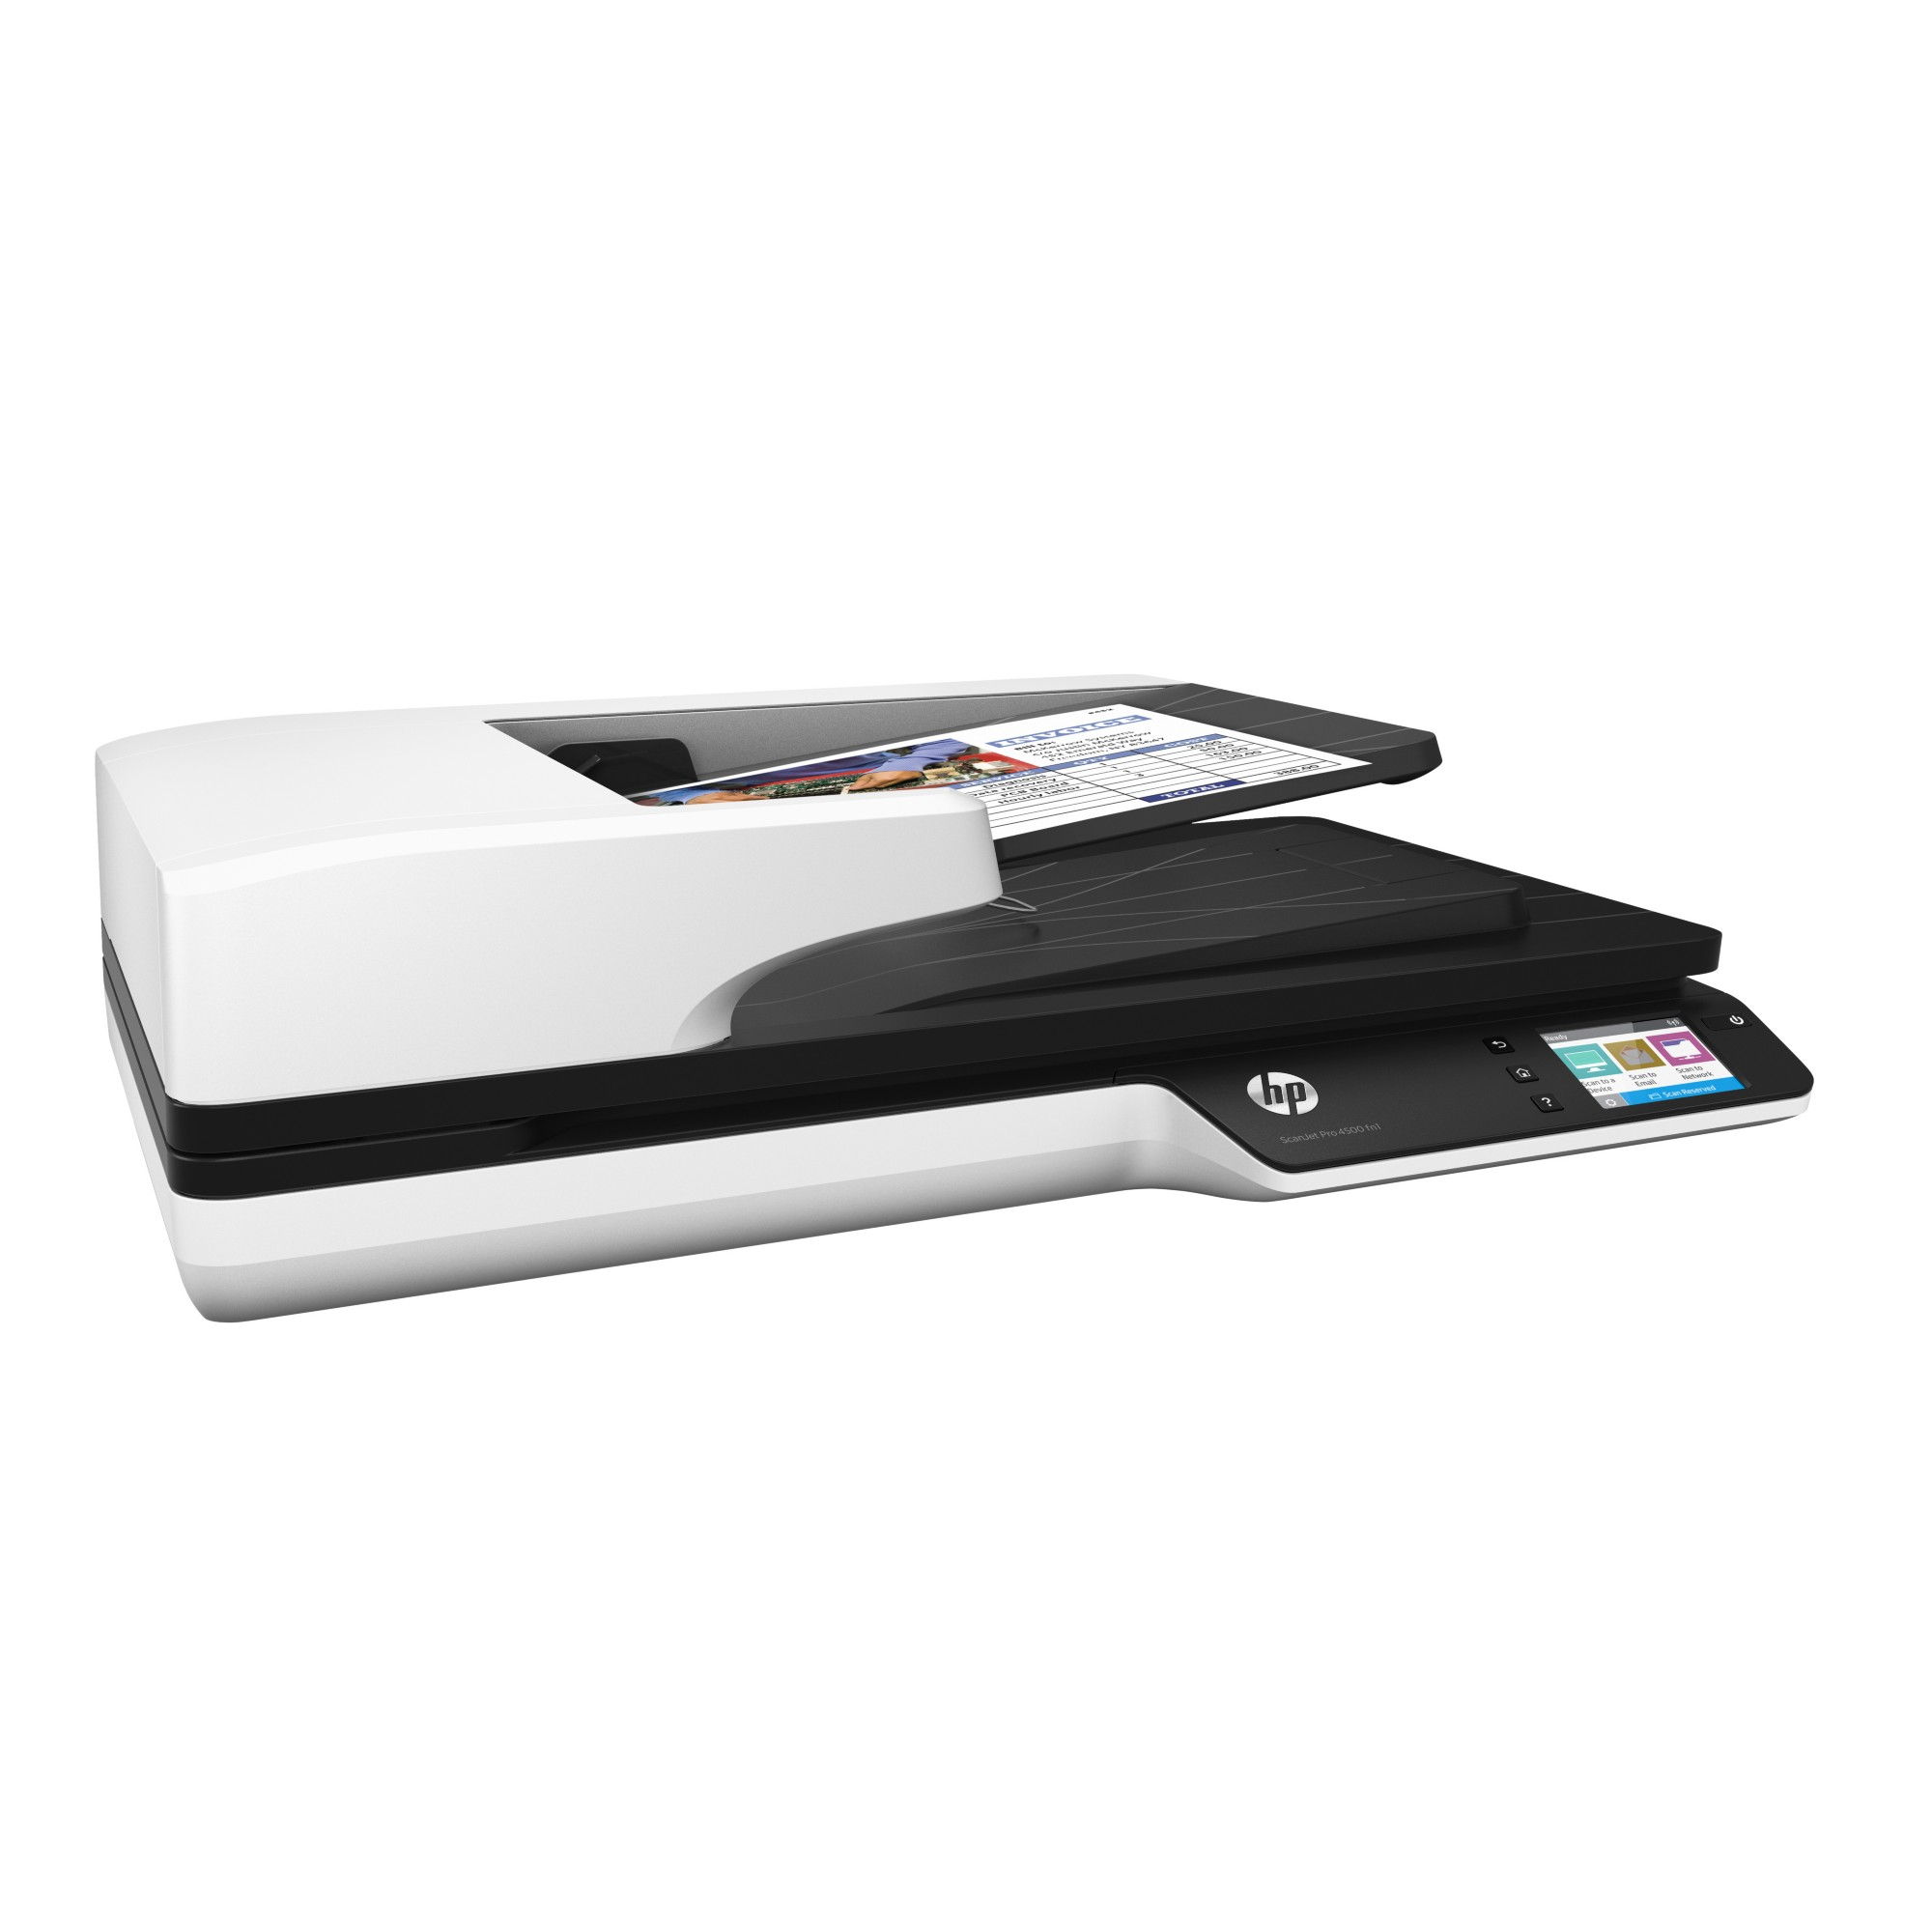 HP L2749A#B19 SCANJET PRO 4500 FN1 NETWORK SCANNER